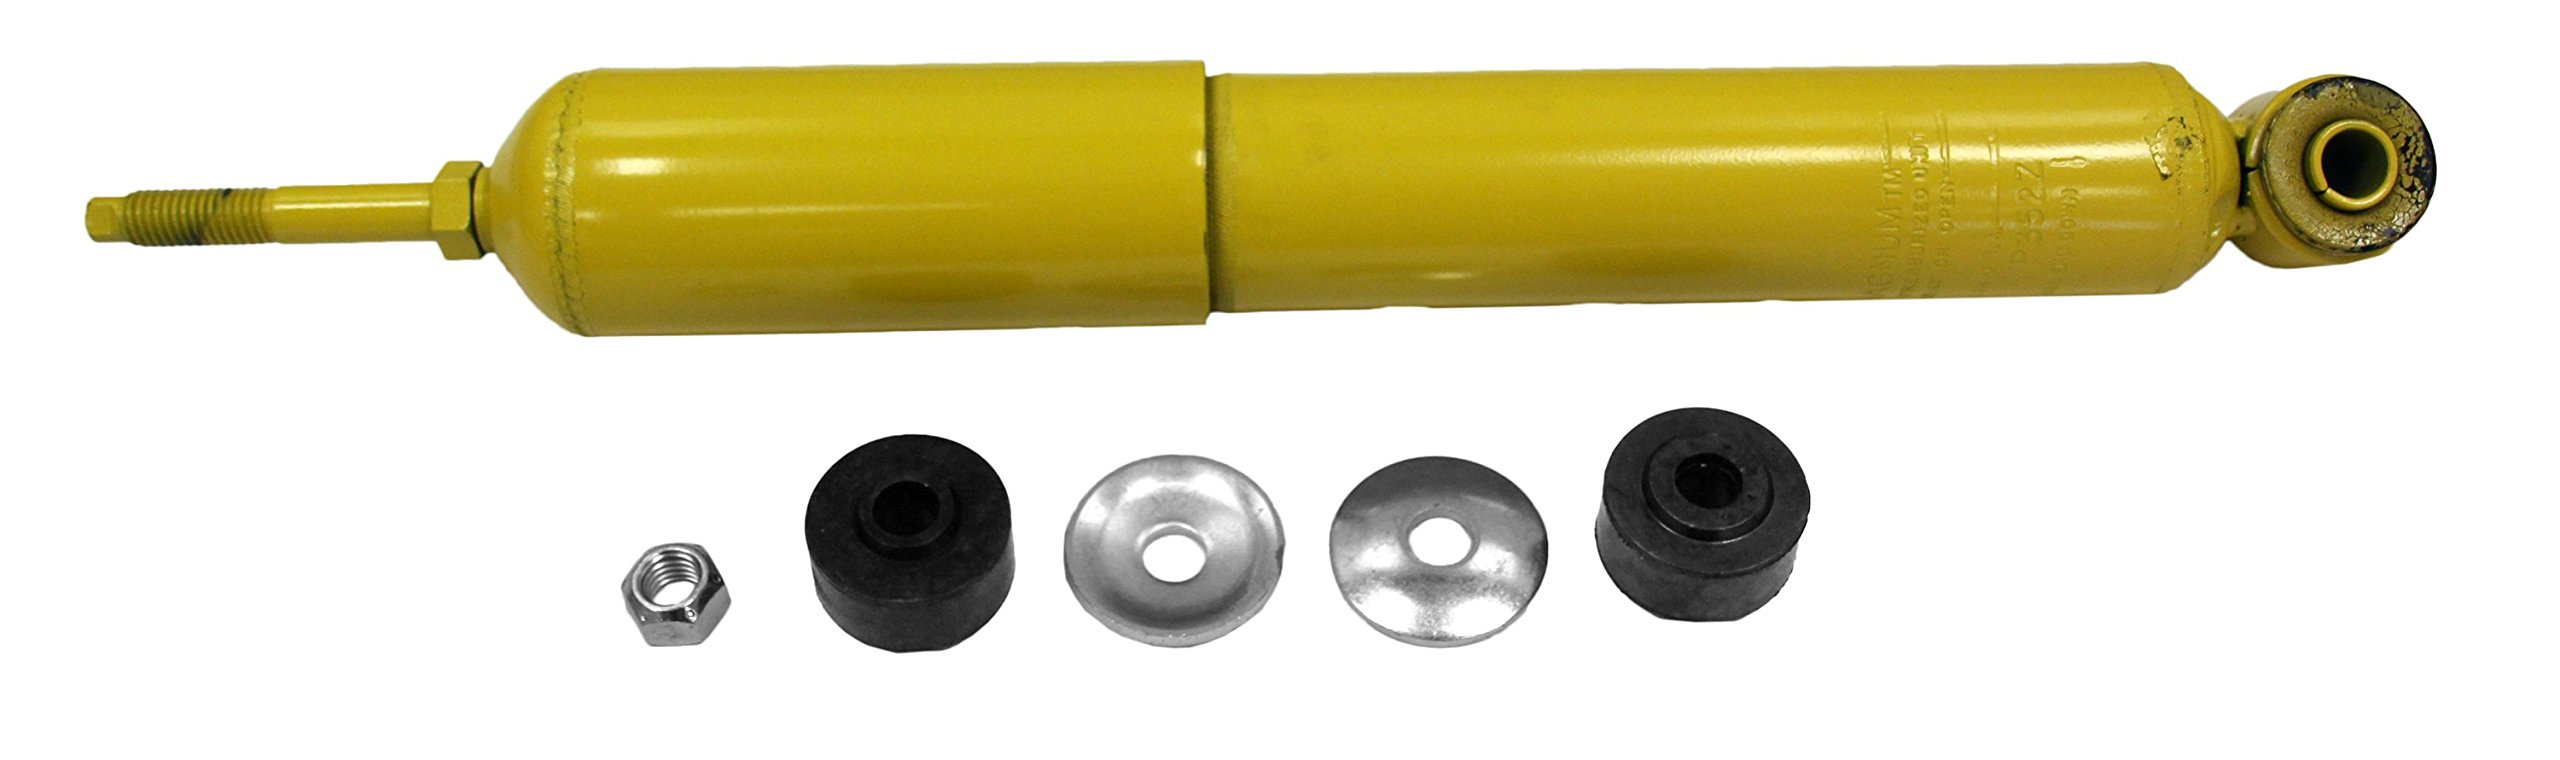 Monroe 34516 Gas-Magnum Truck Shock Absorber by Monroe